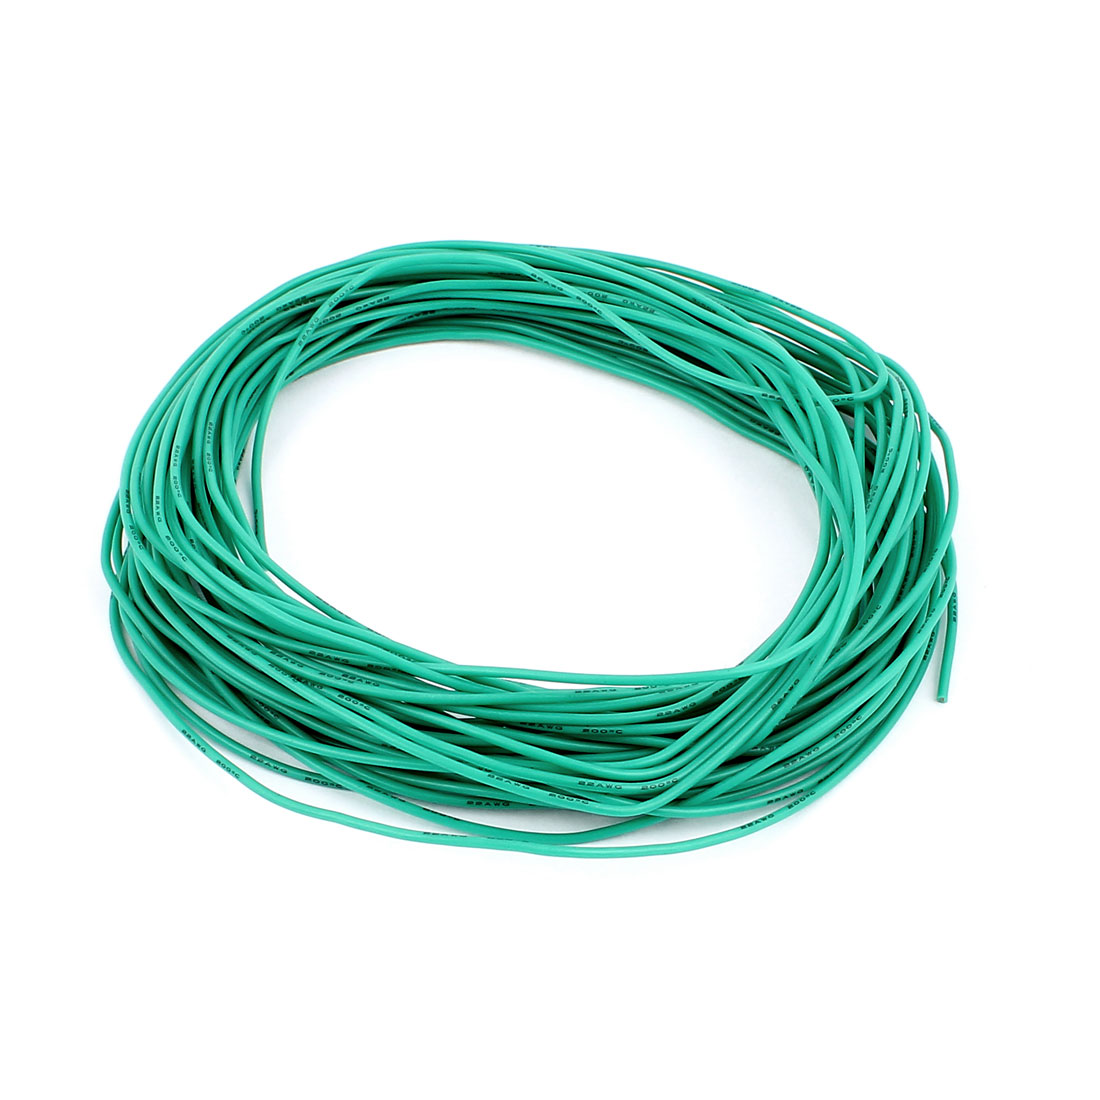 15M 22AWG Electric Copper Core Flexible Silicone Wire Cable Green